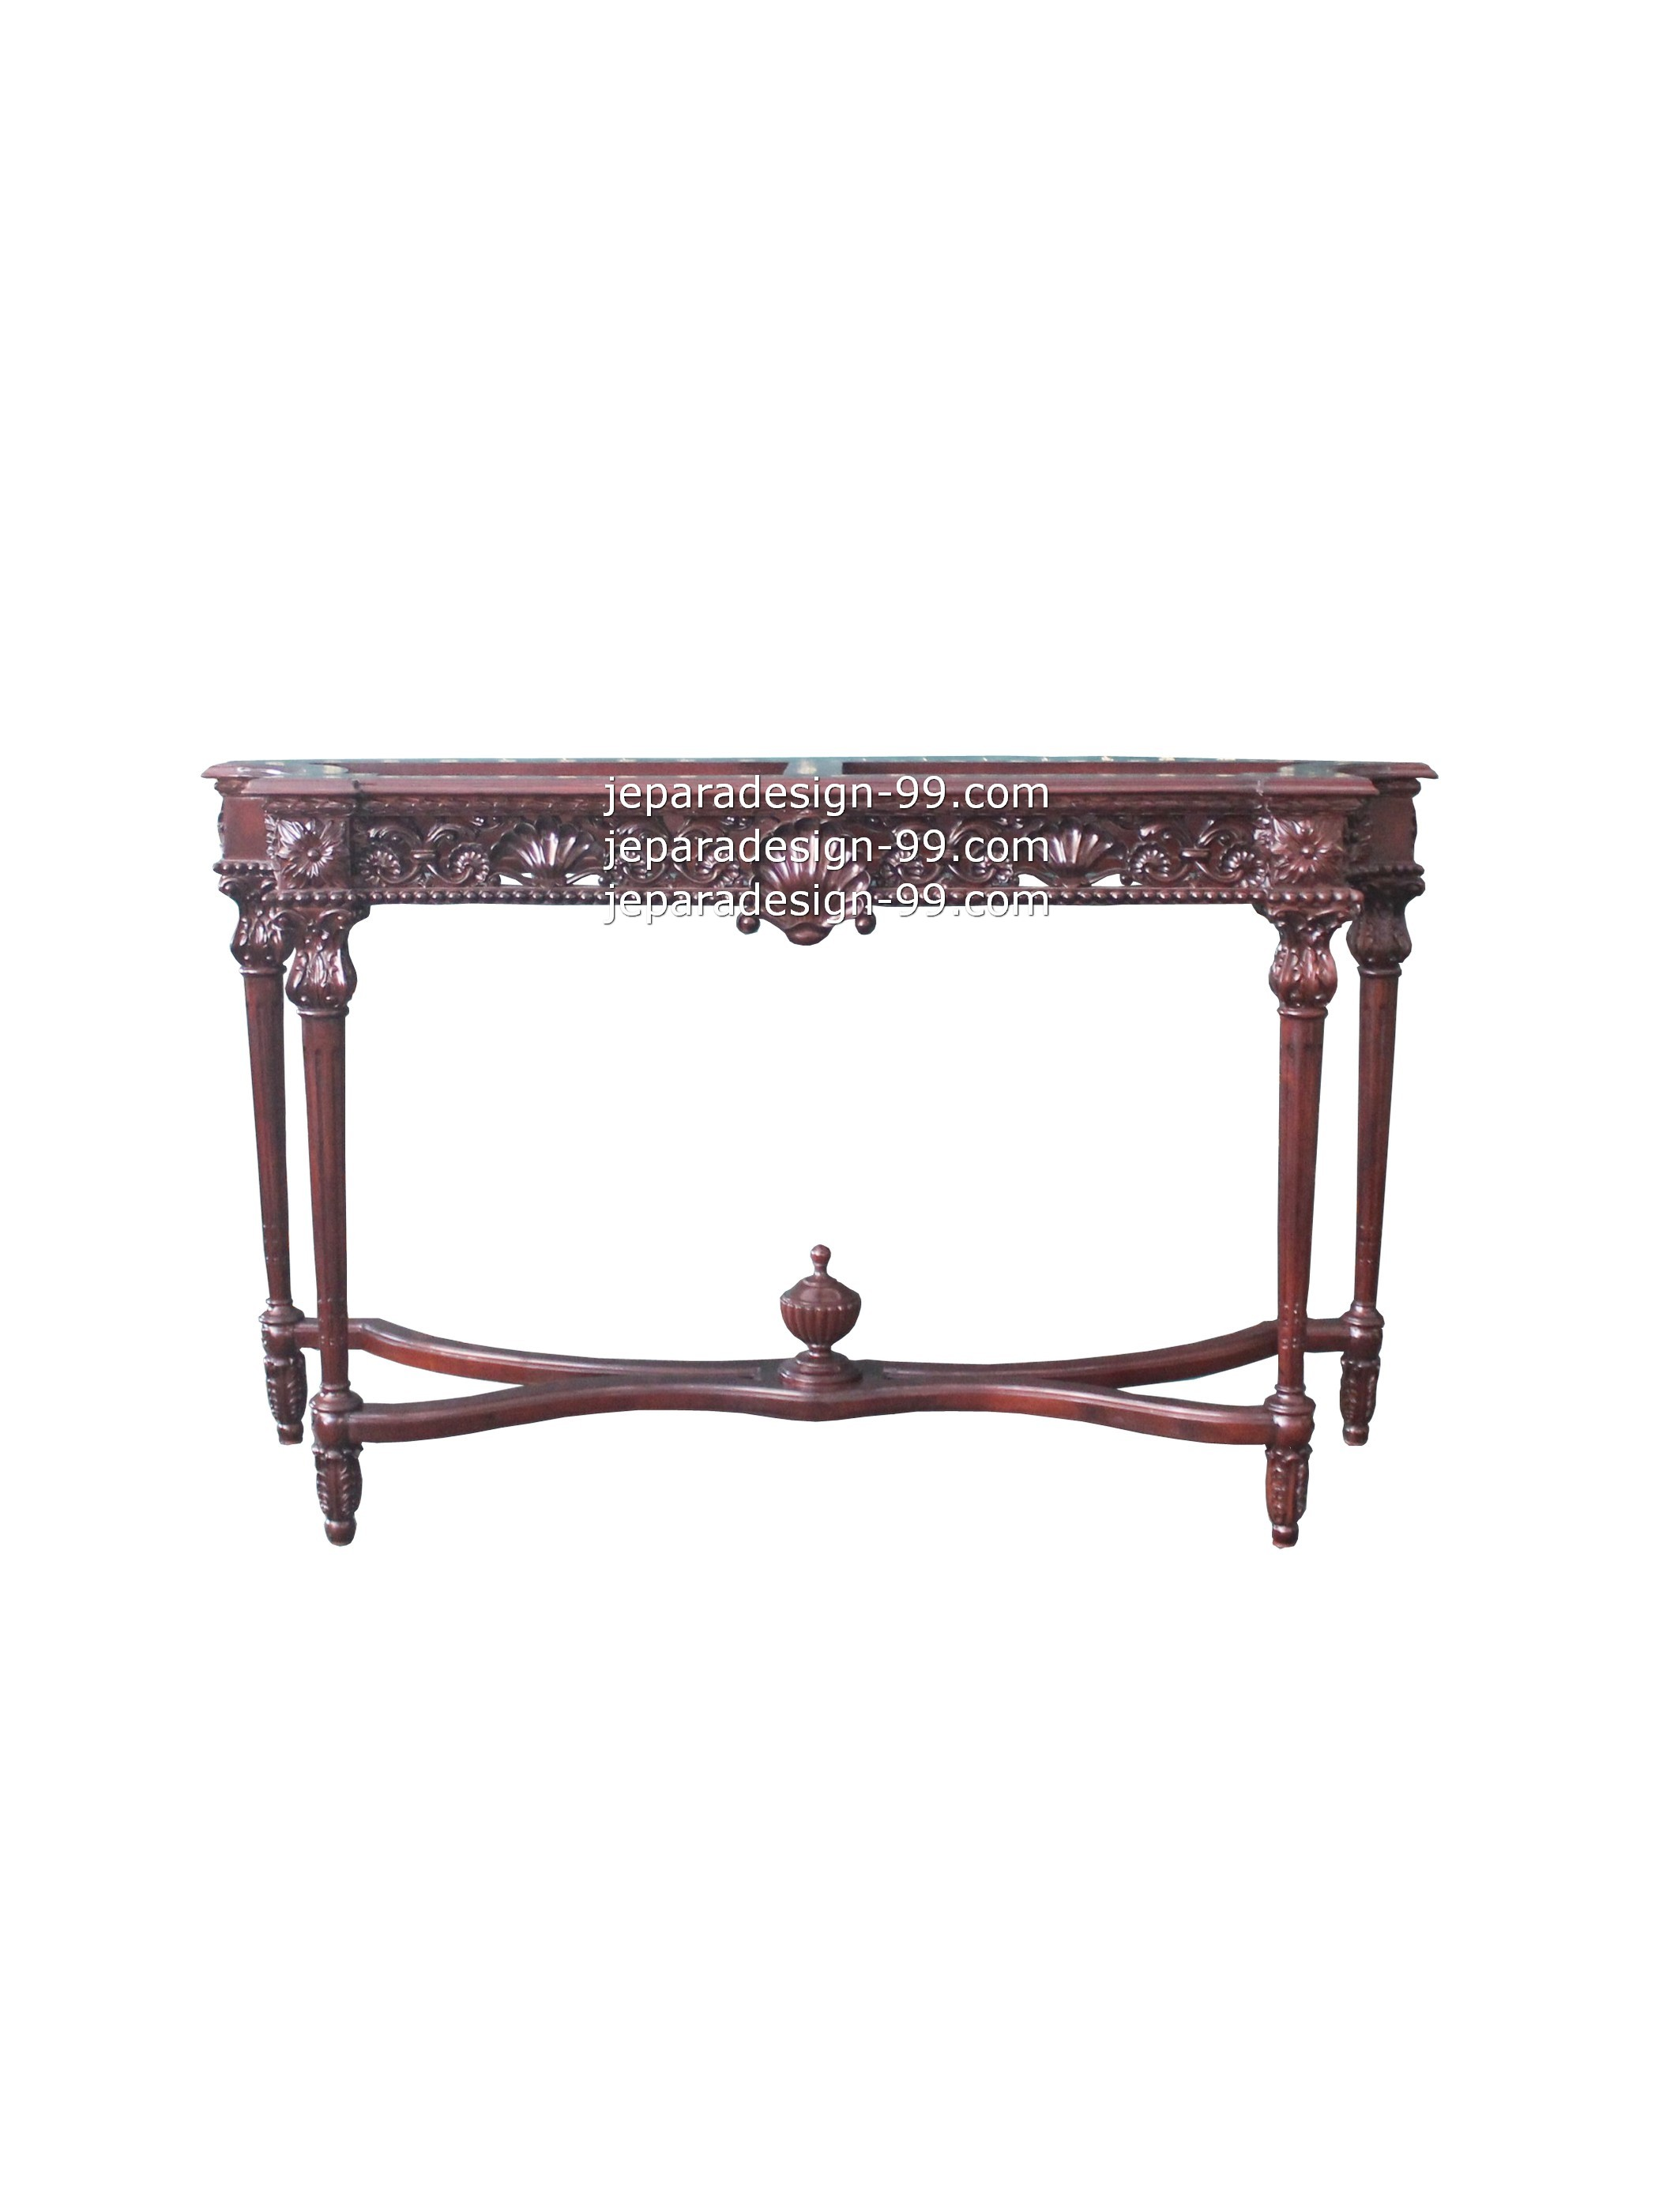 French provincial classic console table by jepara design 99 console table cst 002 wl geotapseo Gallery